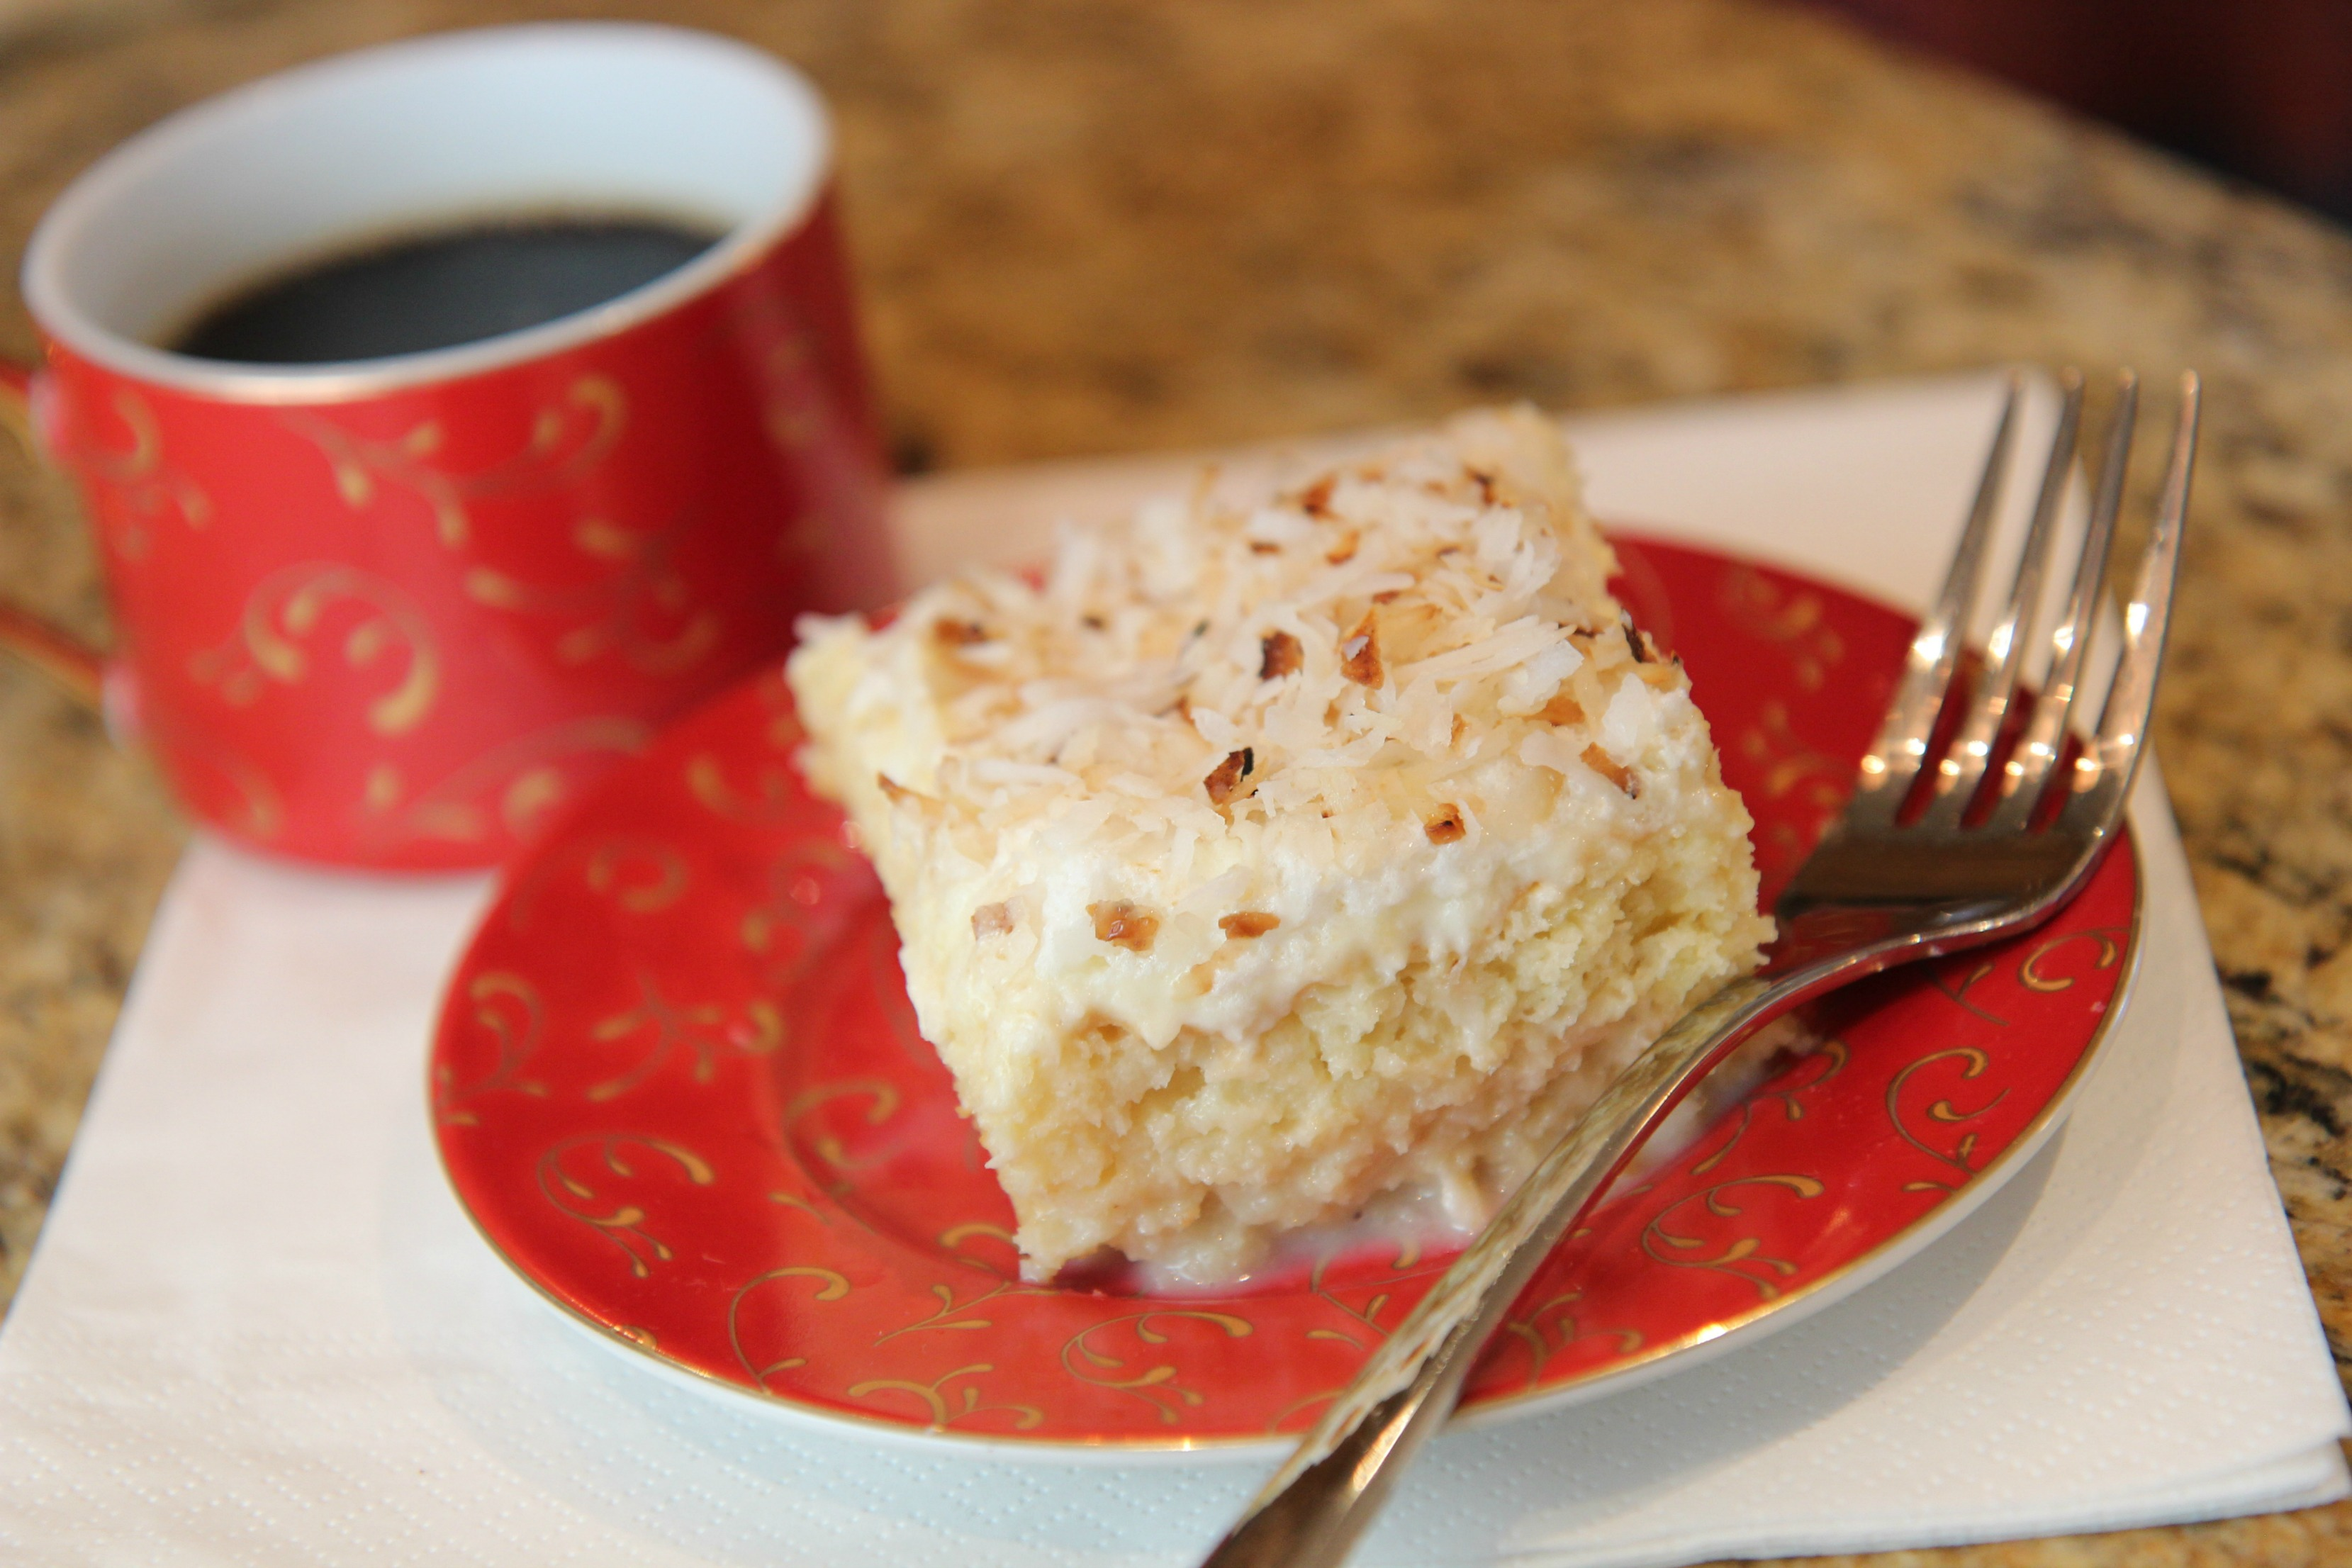 Serve this delicious coconut tres leches cake with some coffee and enjoy.